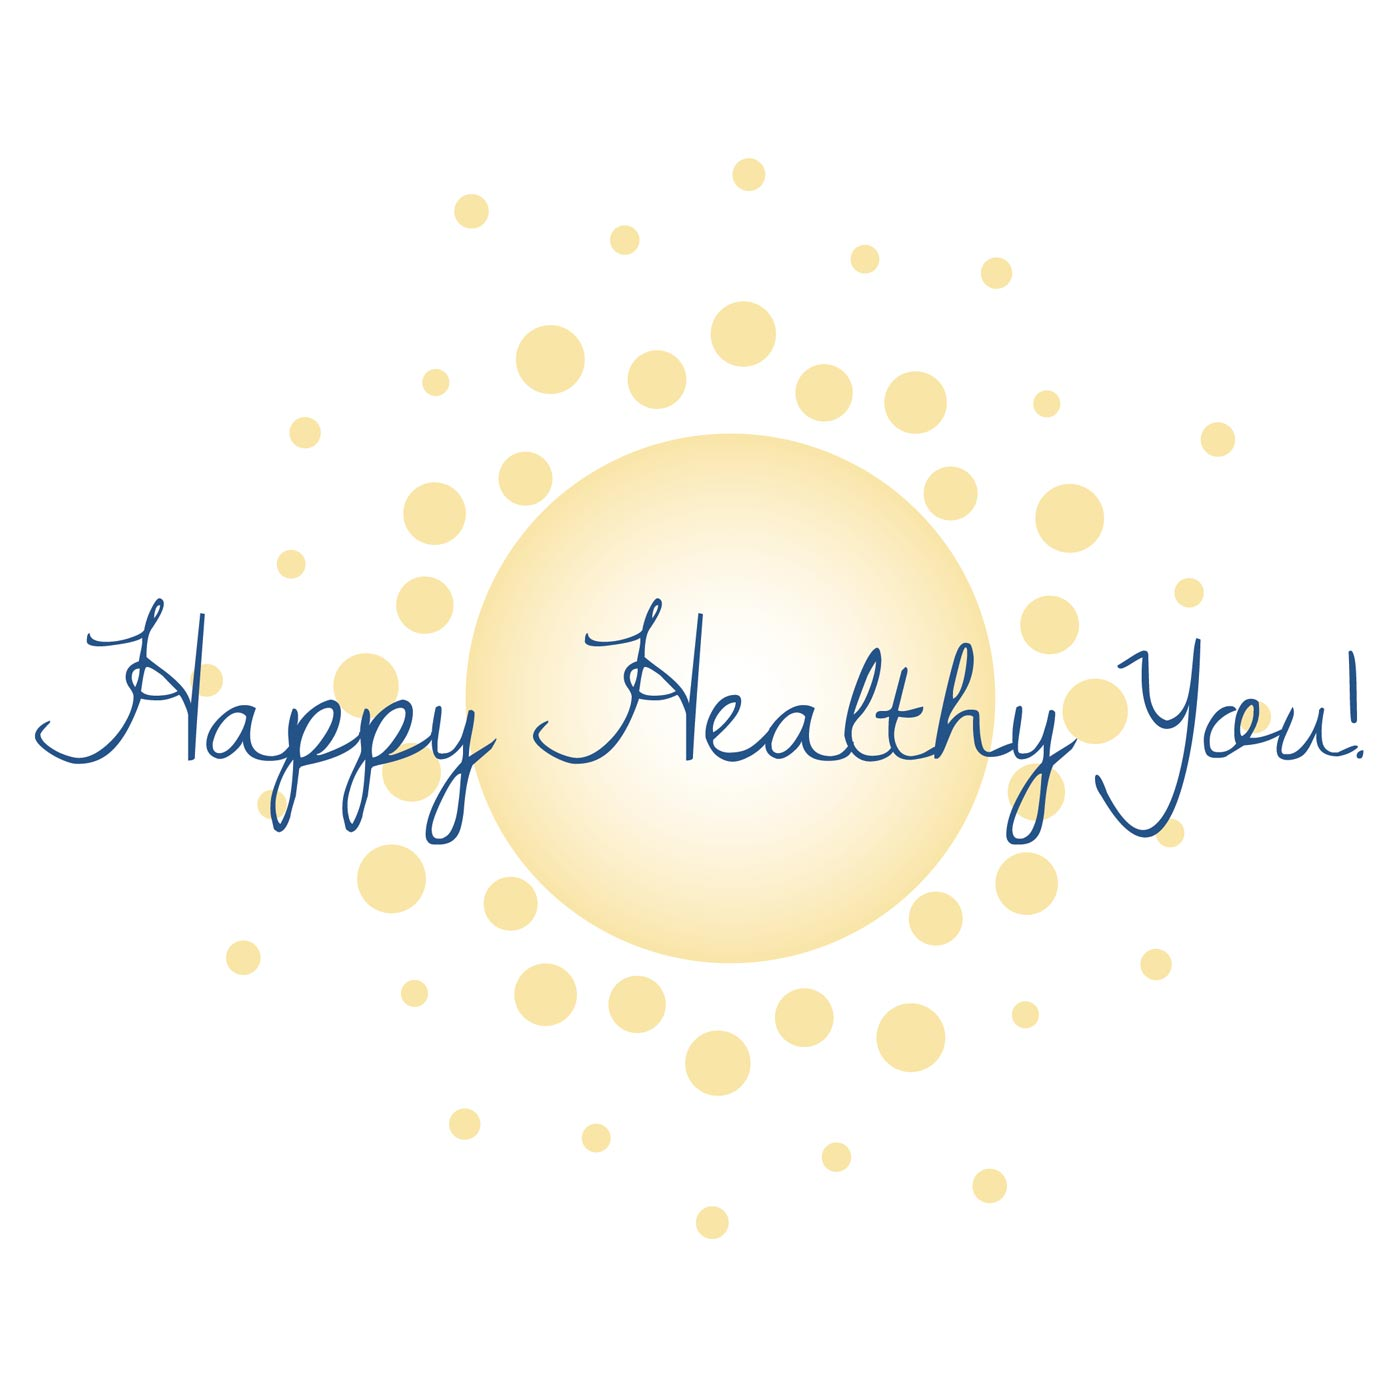 Happy Healthy You Podcast image, interview with Dr. Alison Mitzner about calm and confident parenting